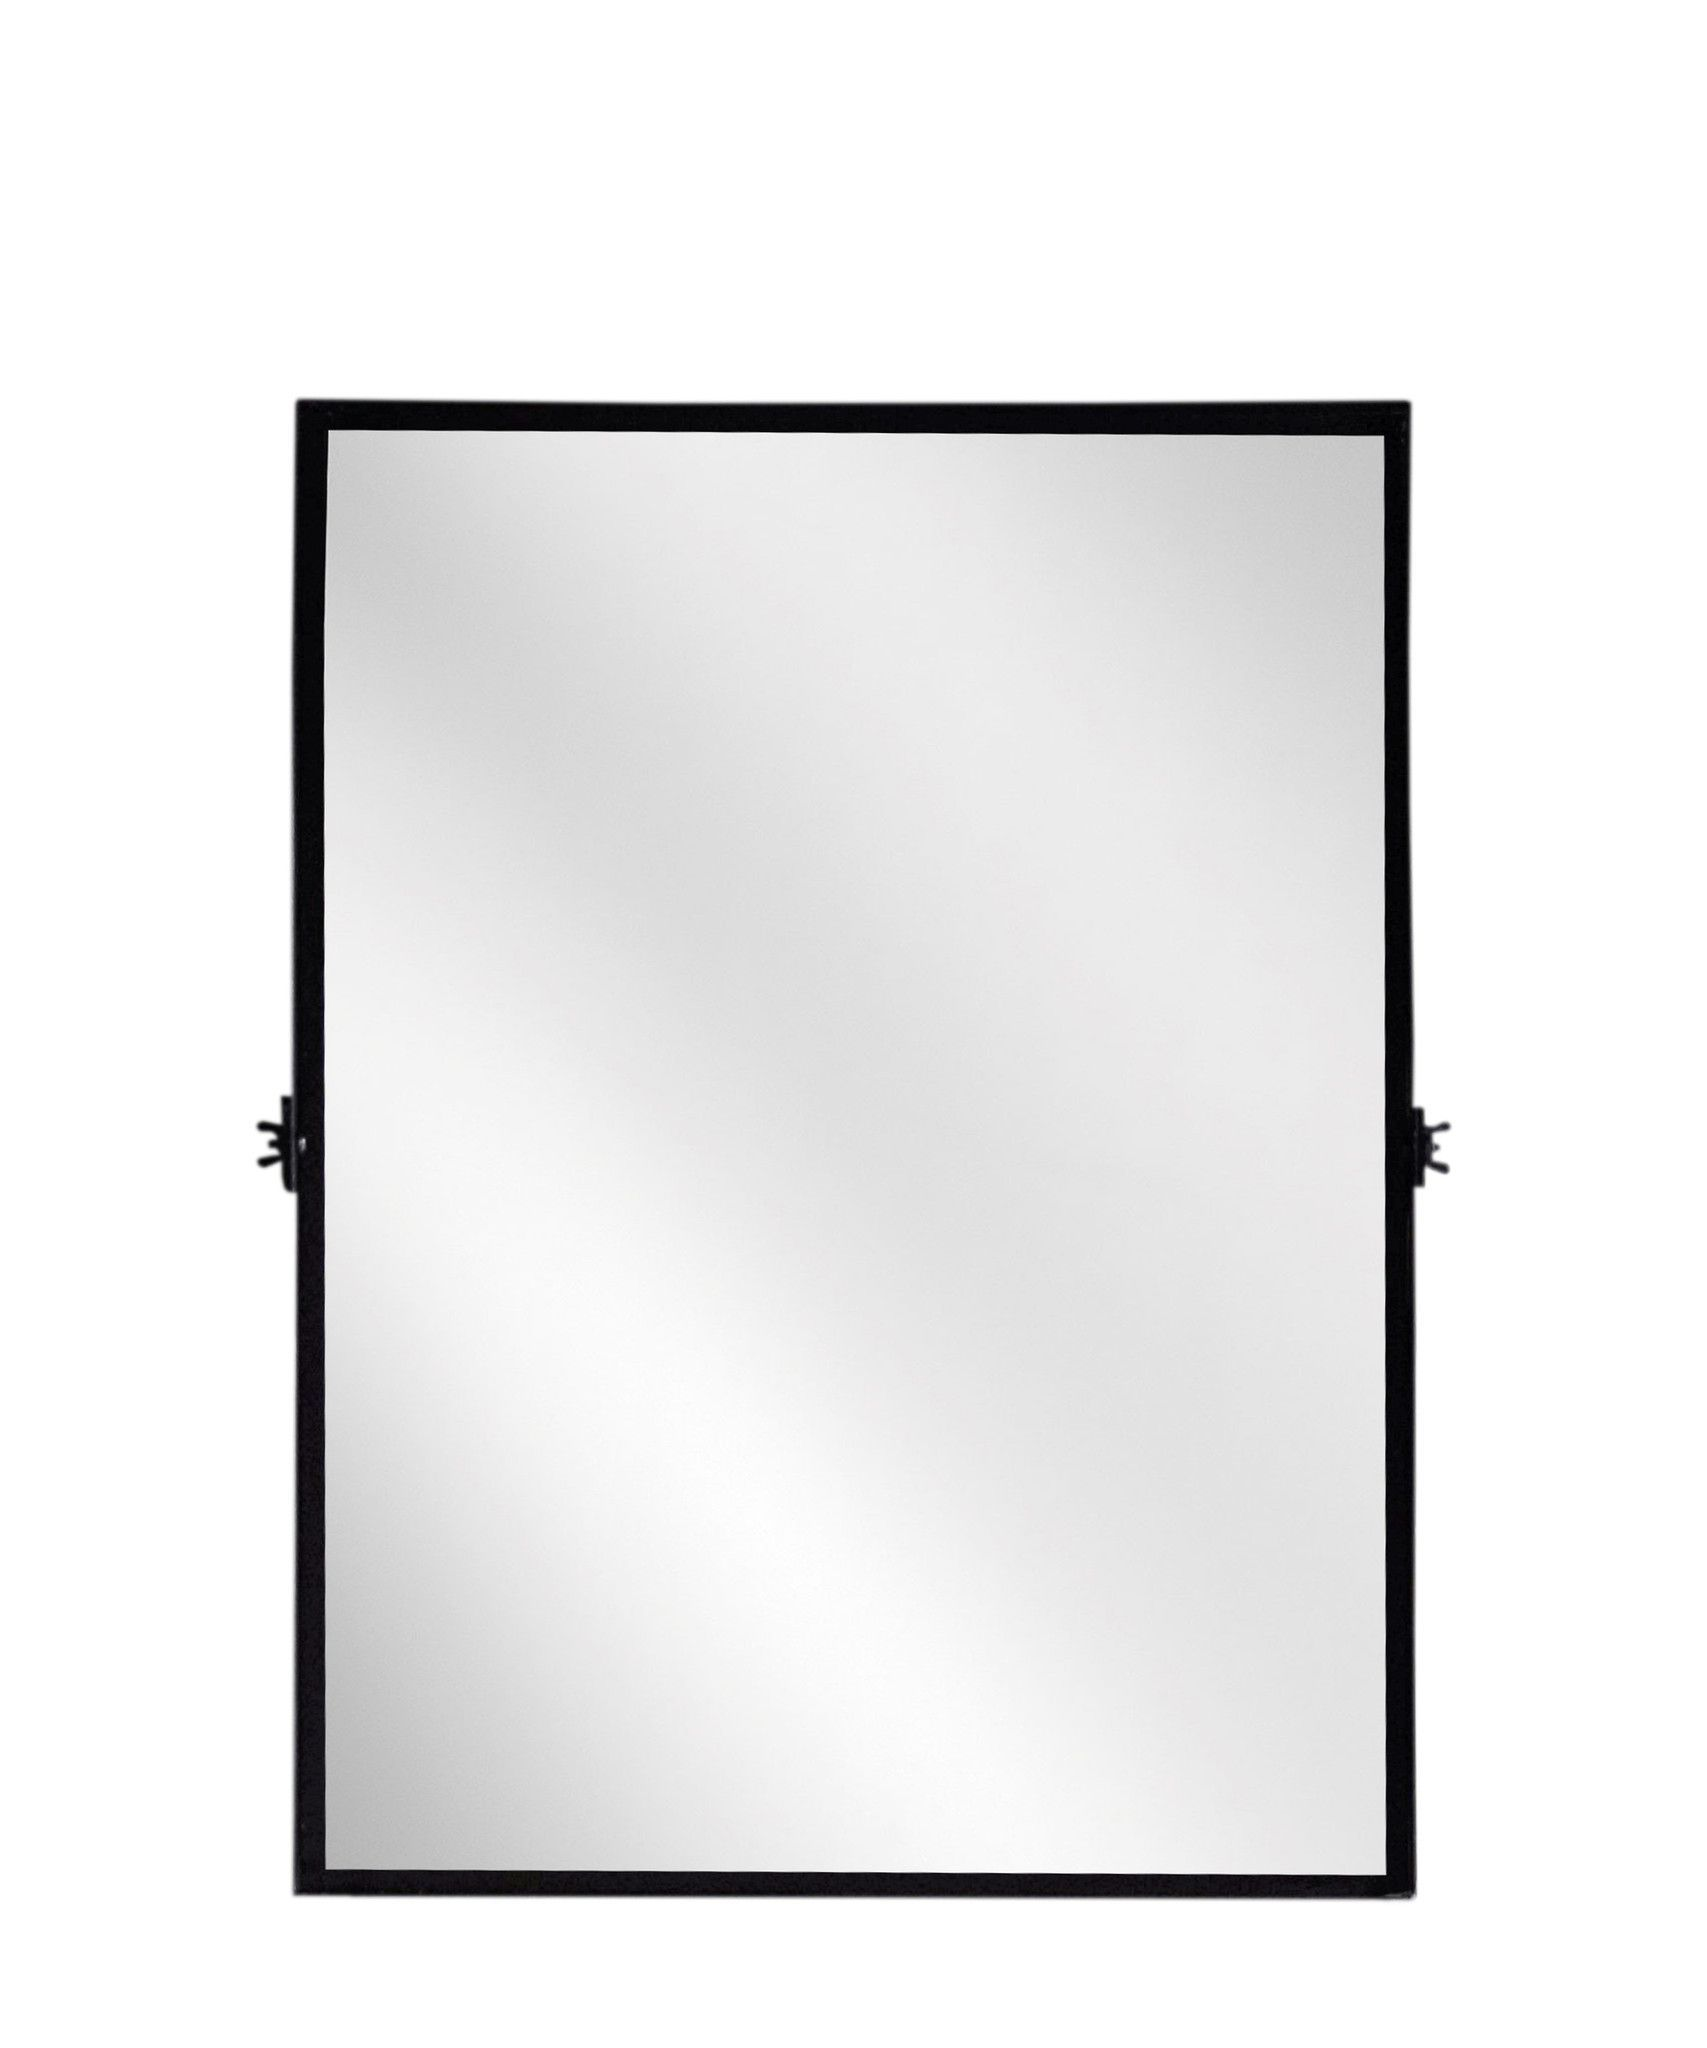 f9b7df9d9ed Rectangular Pivot Mirror - modern black iron frame with a matte black  finish - perfect for tilting in a bathroom or entryway - measures 18